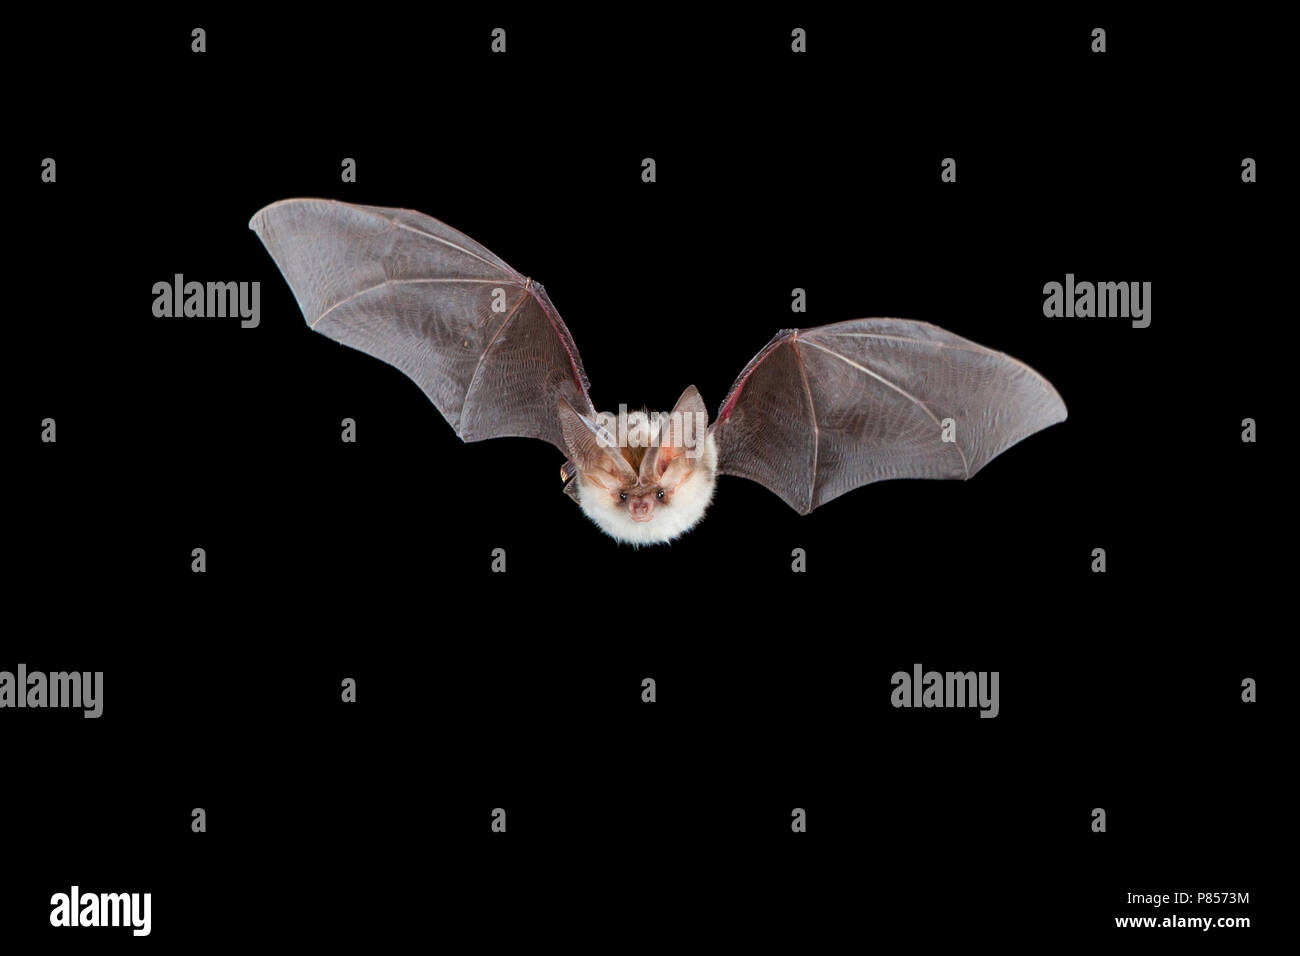 Grootoorvleermuis in de vlucht; Brown long-eared Bat in flight - Stock Image